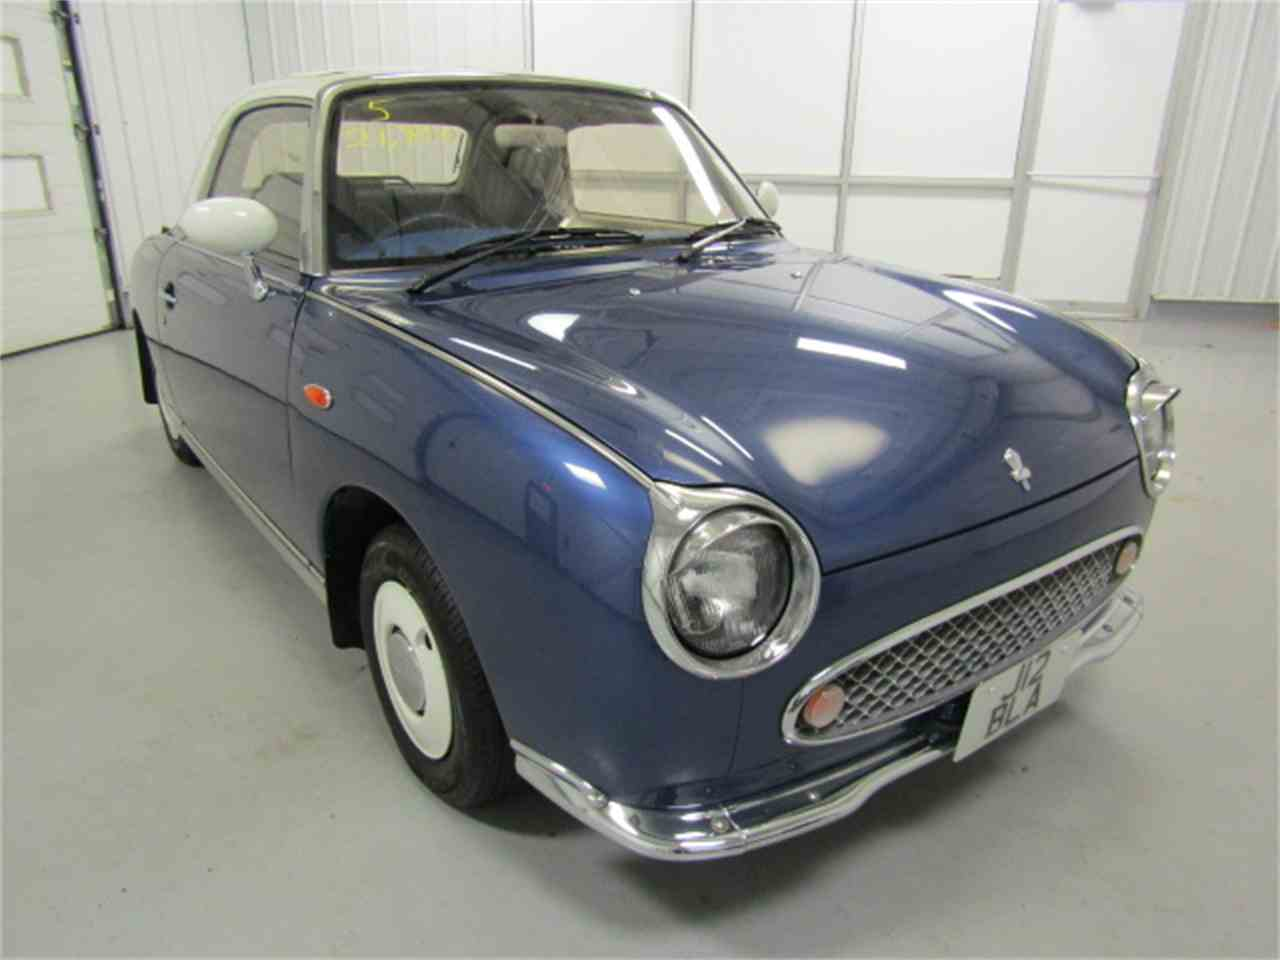 1991 Nissan Figaro for Sale - CC-937164